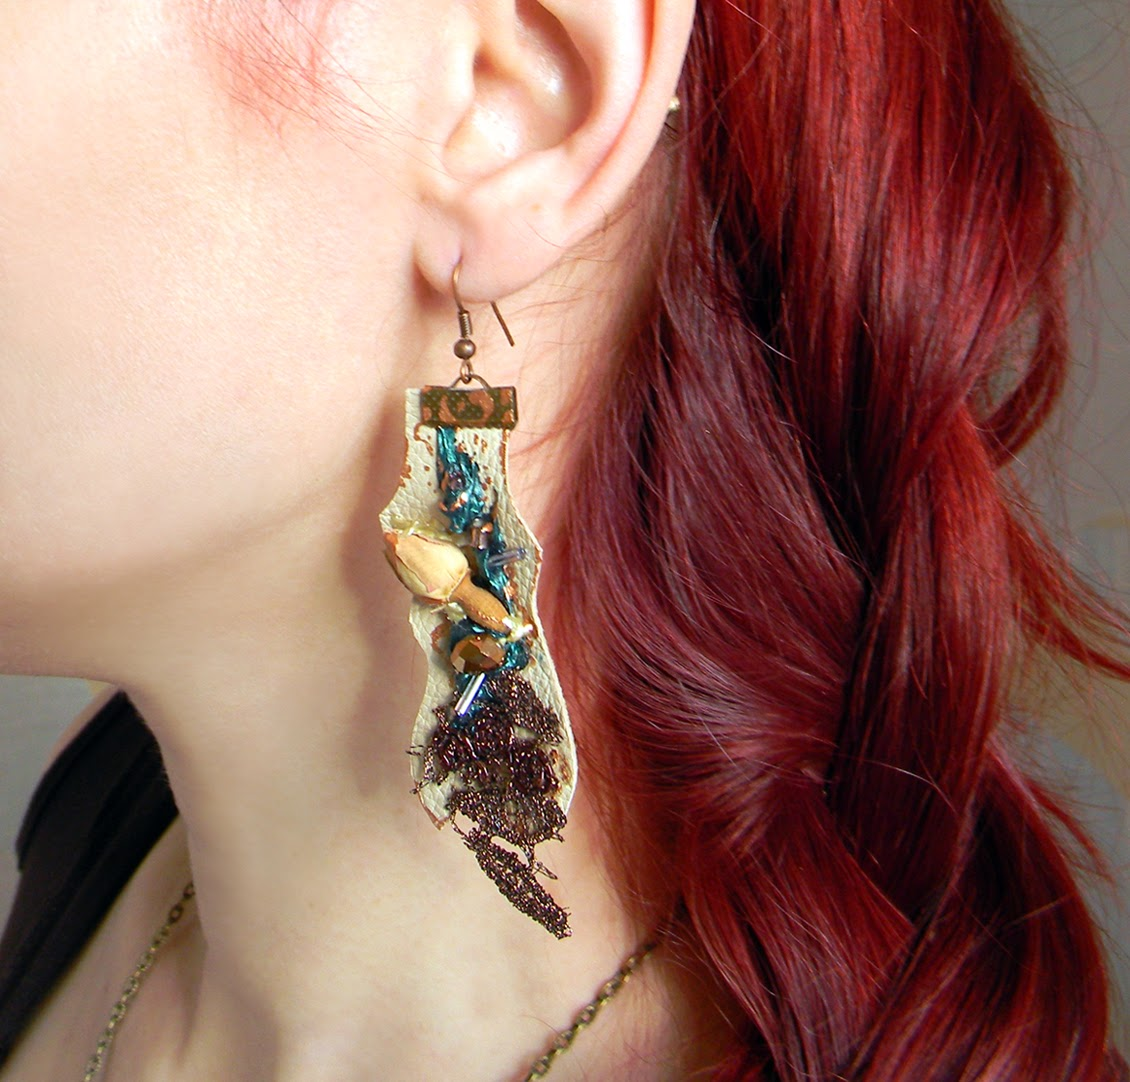 Dangle Leather Earrings in Eco Chic and Fancy Rustic Style with Organic Rose and Brown Copper Embroidery Applique